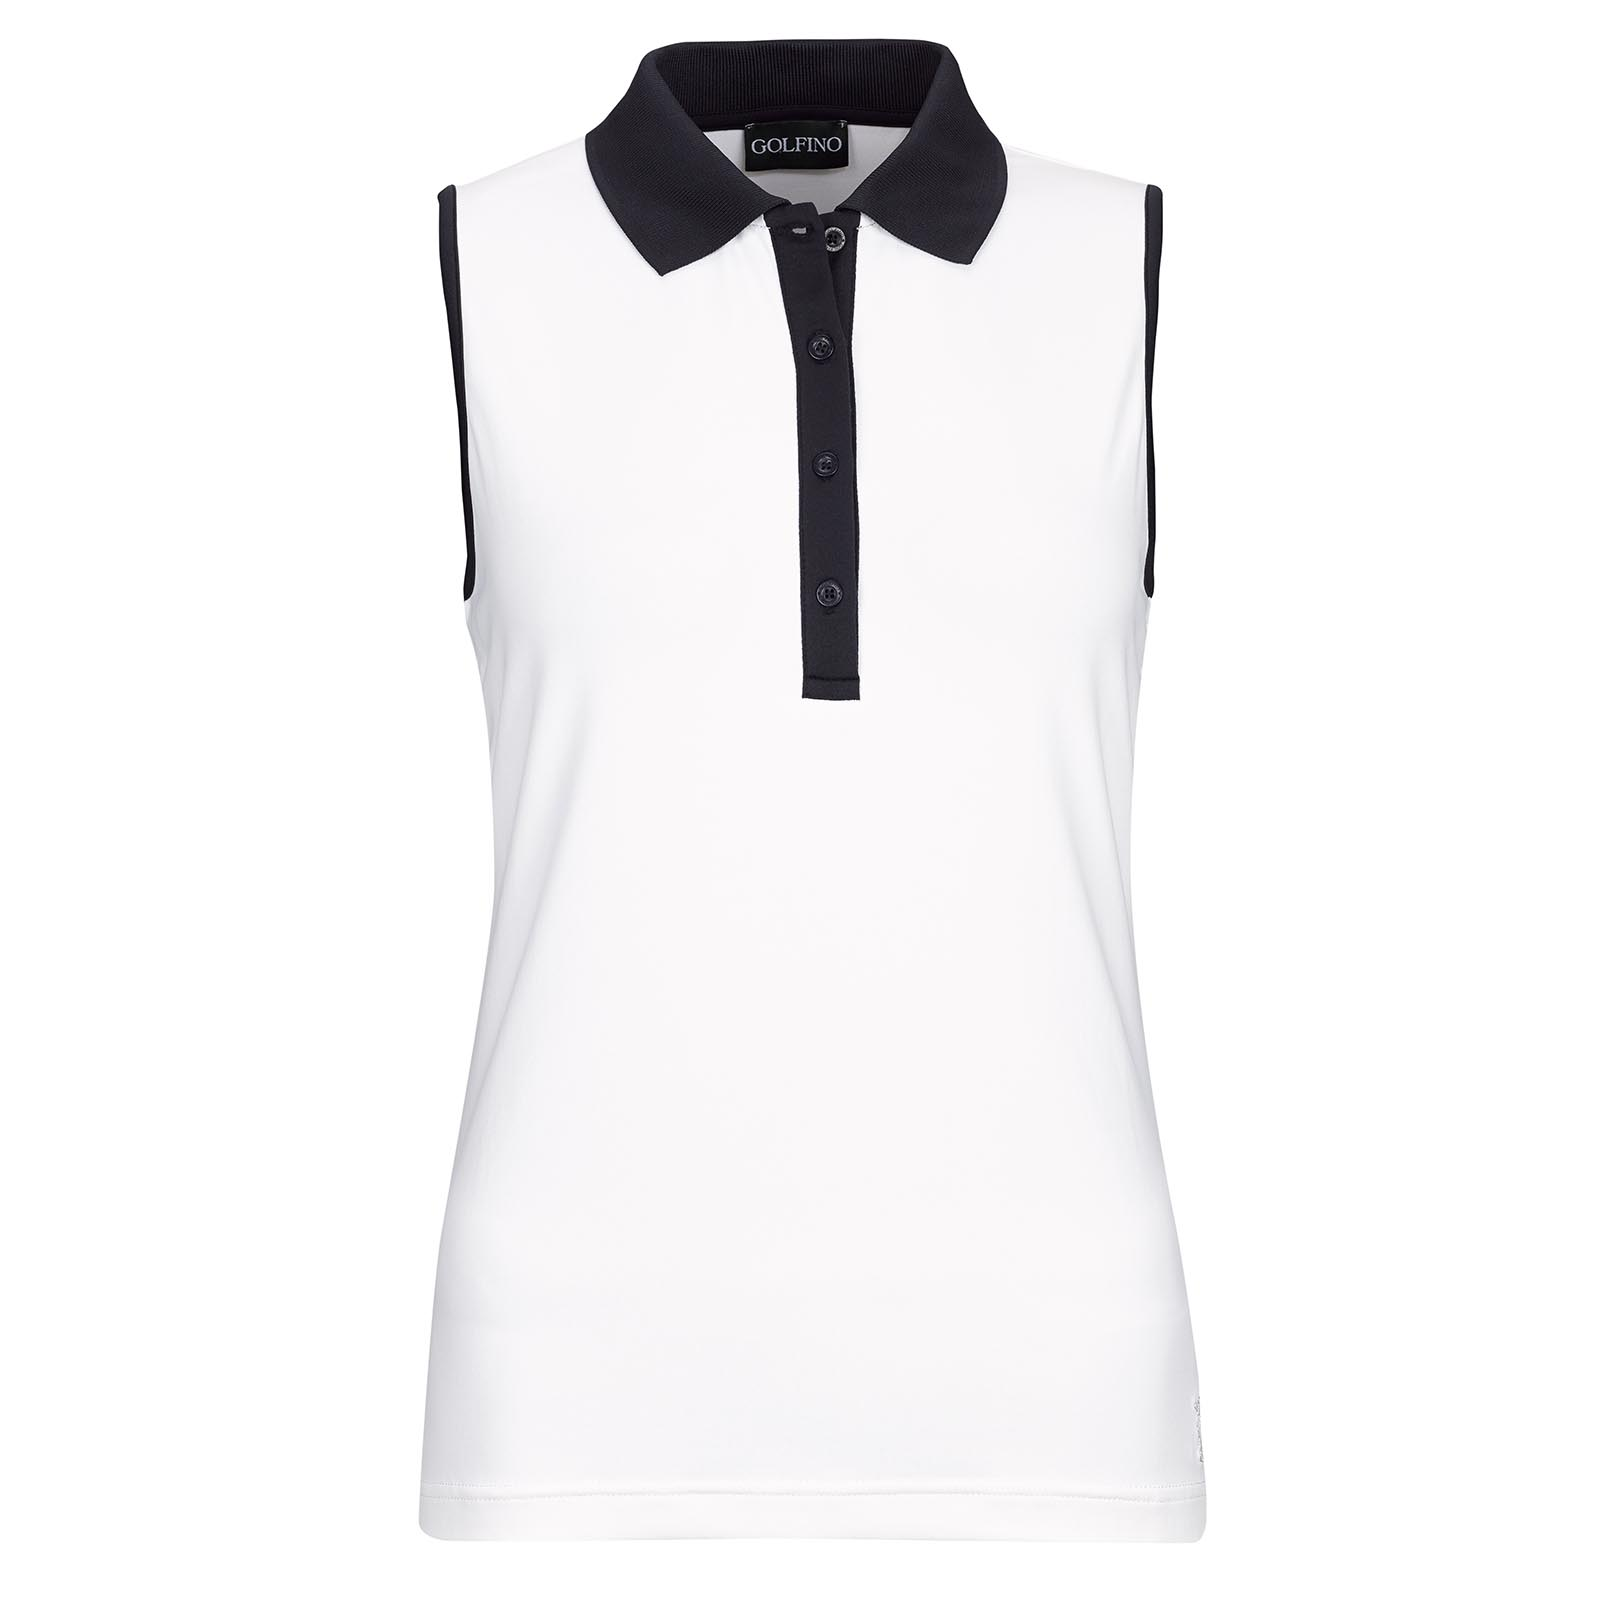 Ladies' sleeveless Dry Comfort functional golf polo from Lycra mix